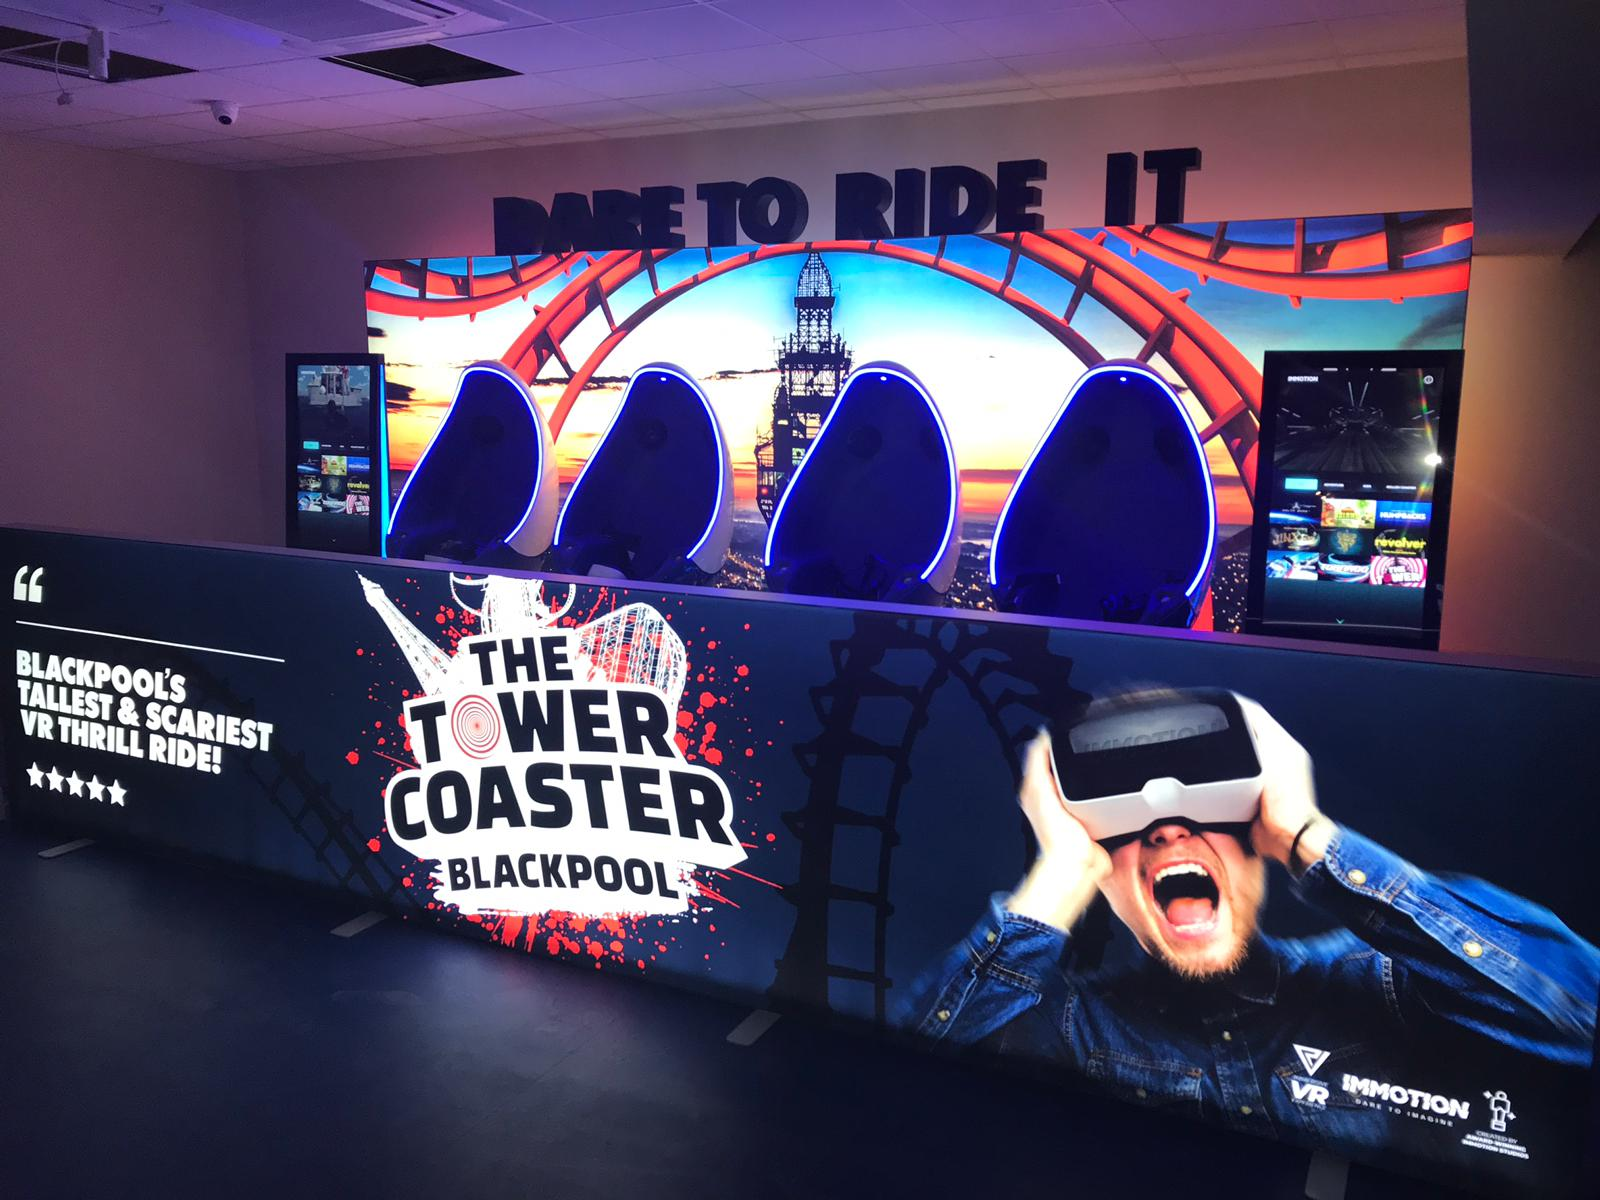 Lift-Off for Virtually the Tallest Rollercoaster in Blackpool